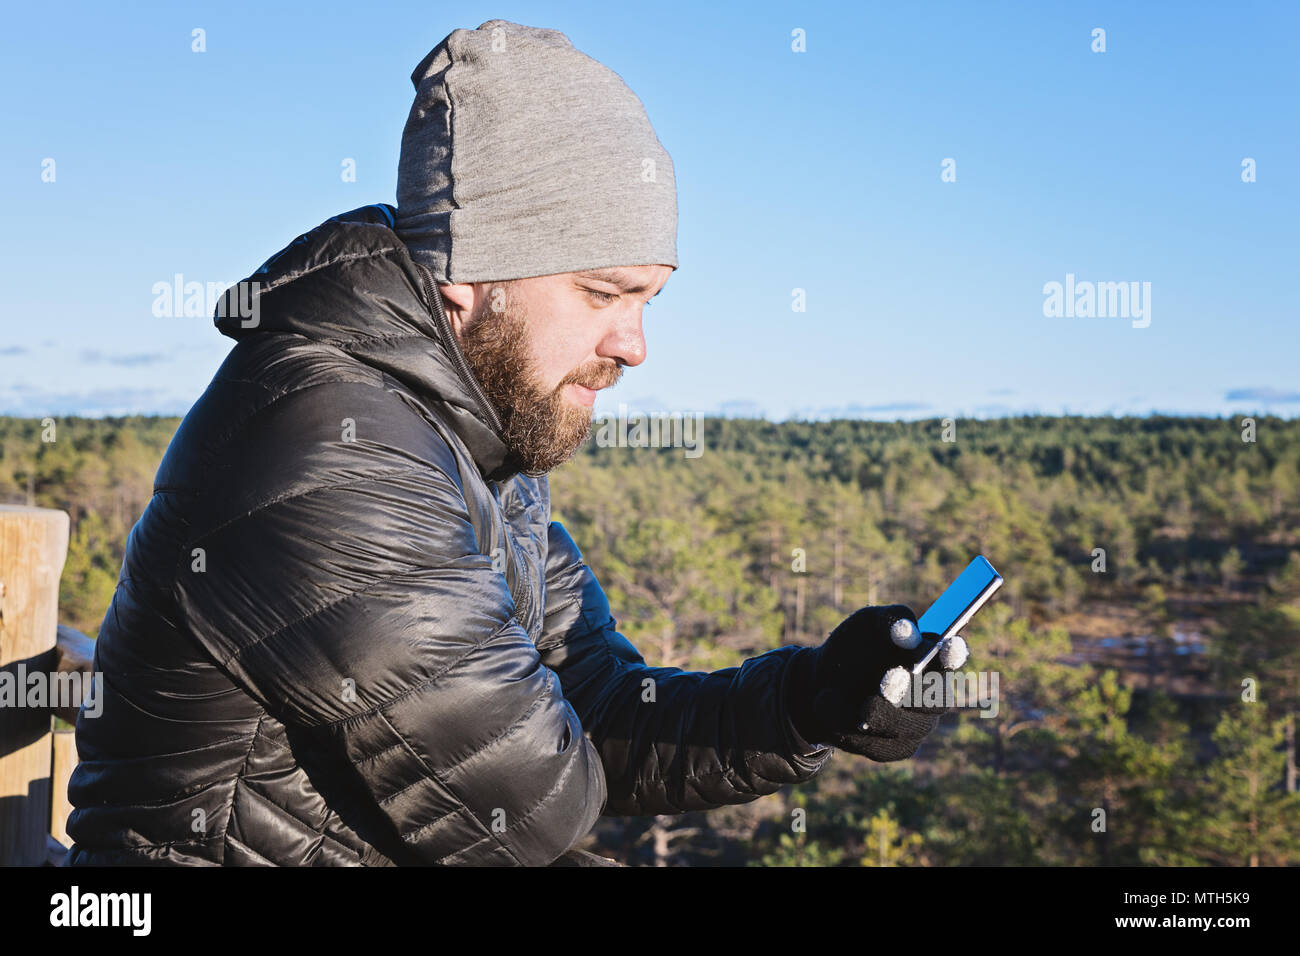 Caucasian bearded man looking at smartphone against blue sky and forest outdoor lifestyle and smartphone addiction concept - Stock Image